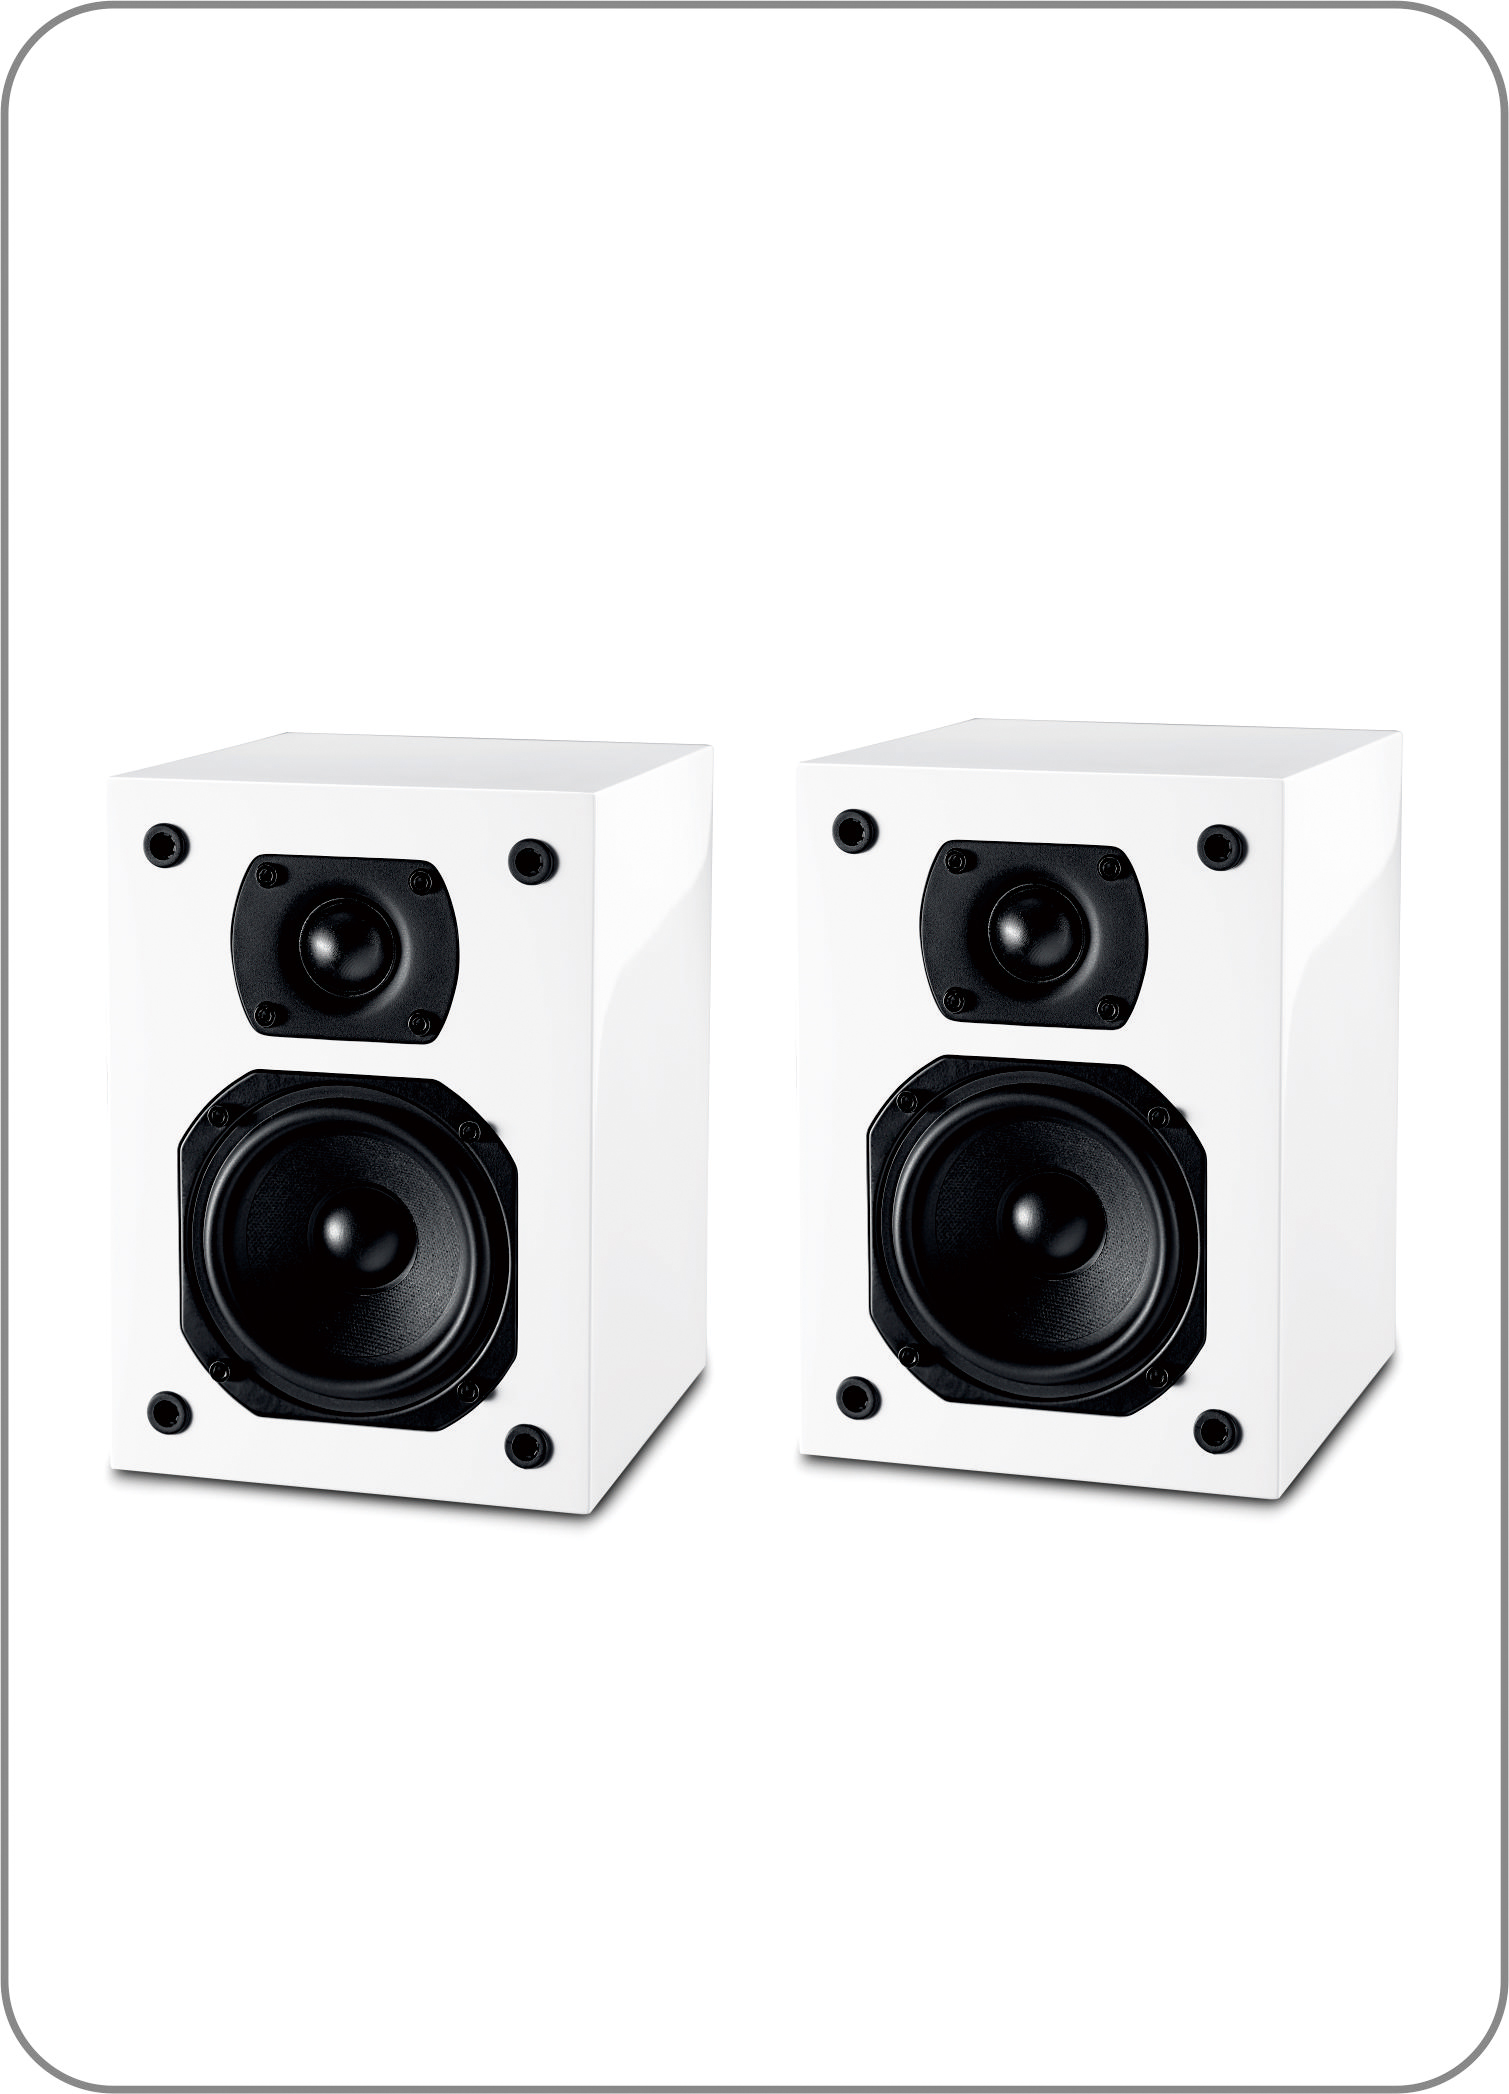 S40 SUR Surround Speaker